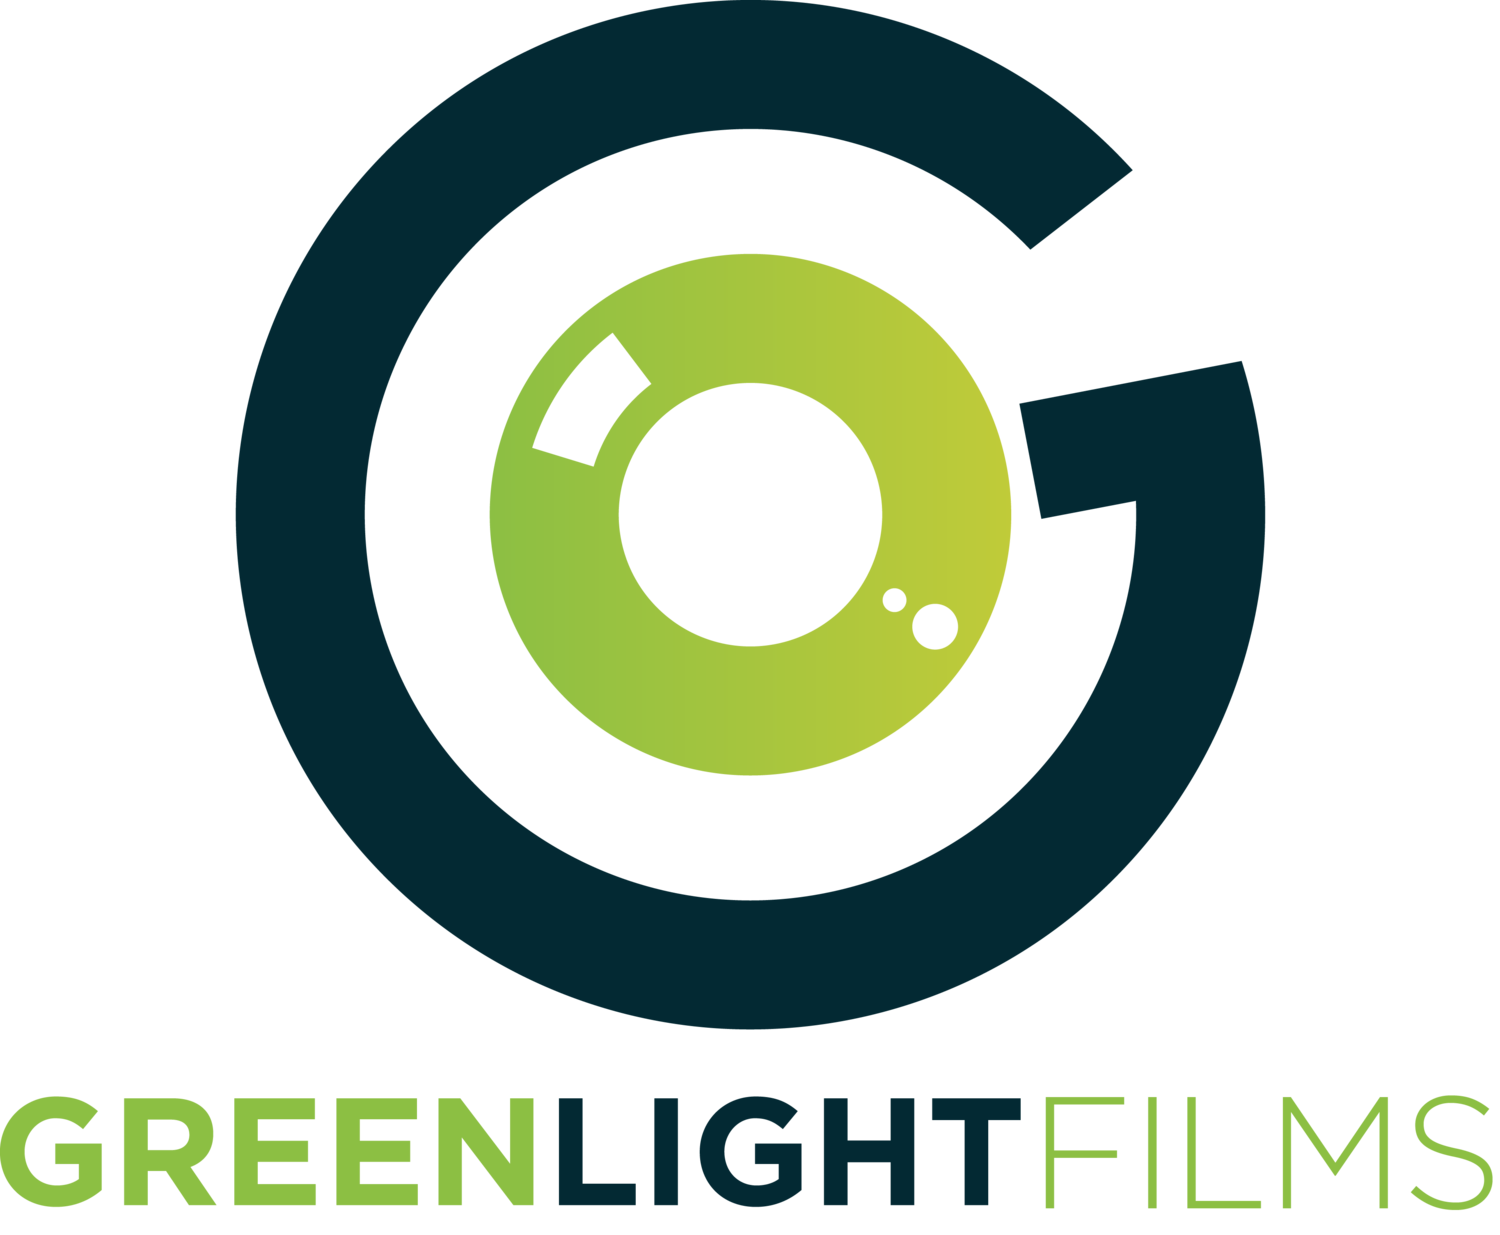 Greenlight Films